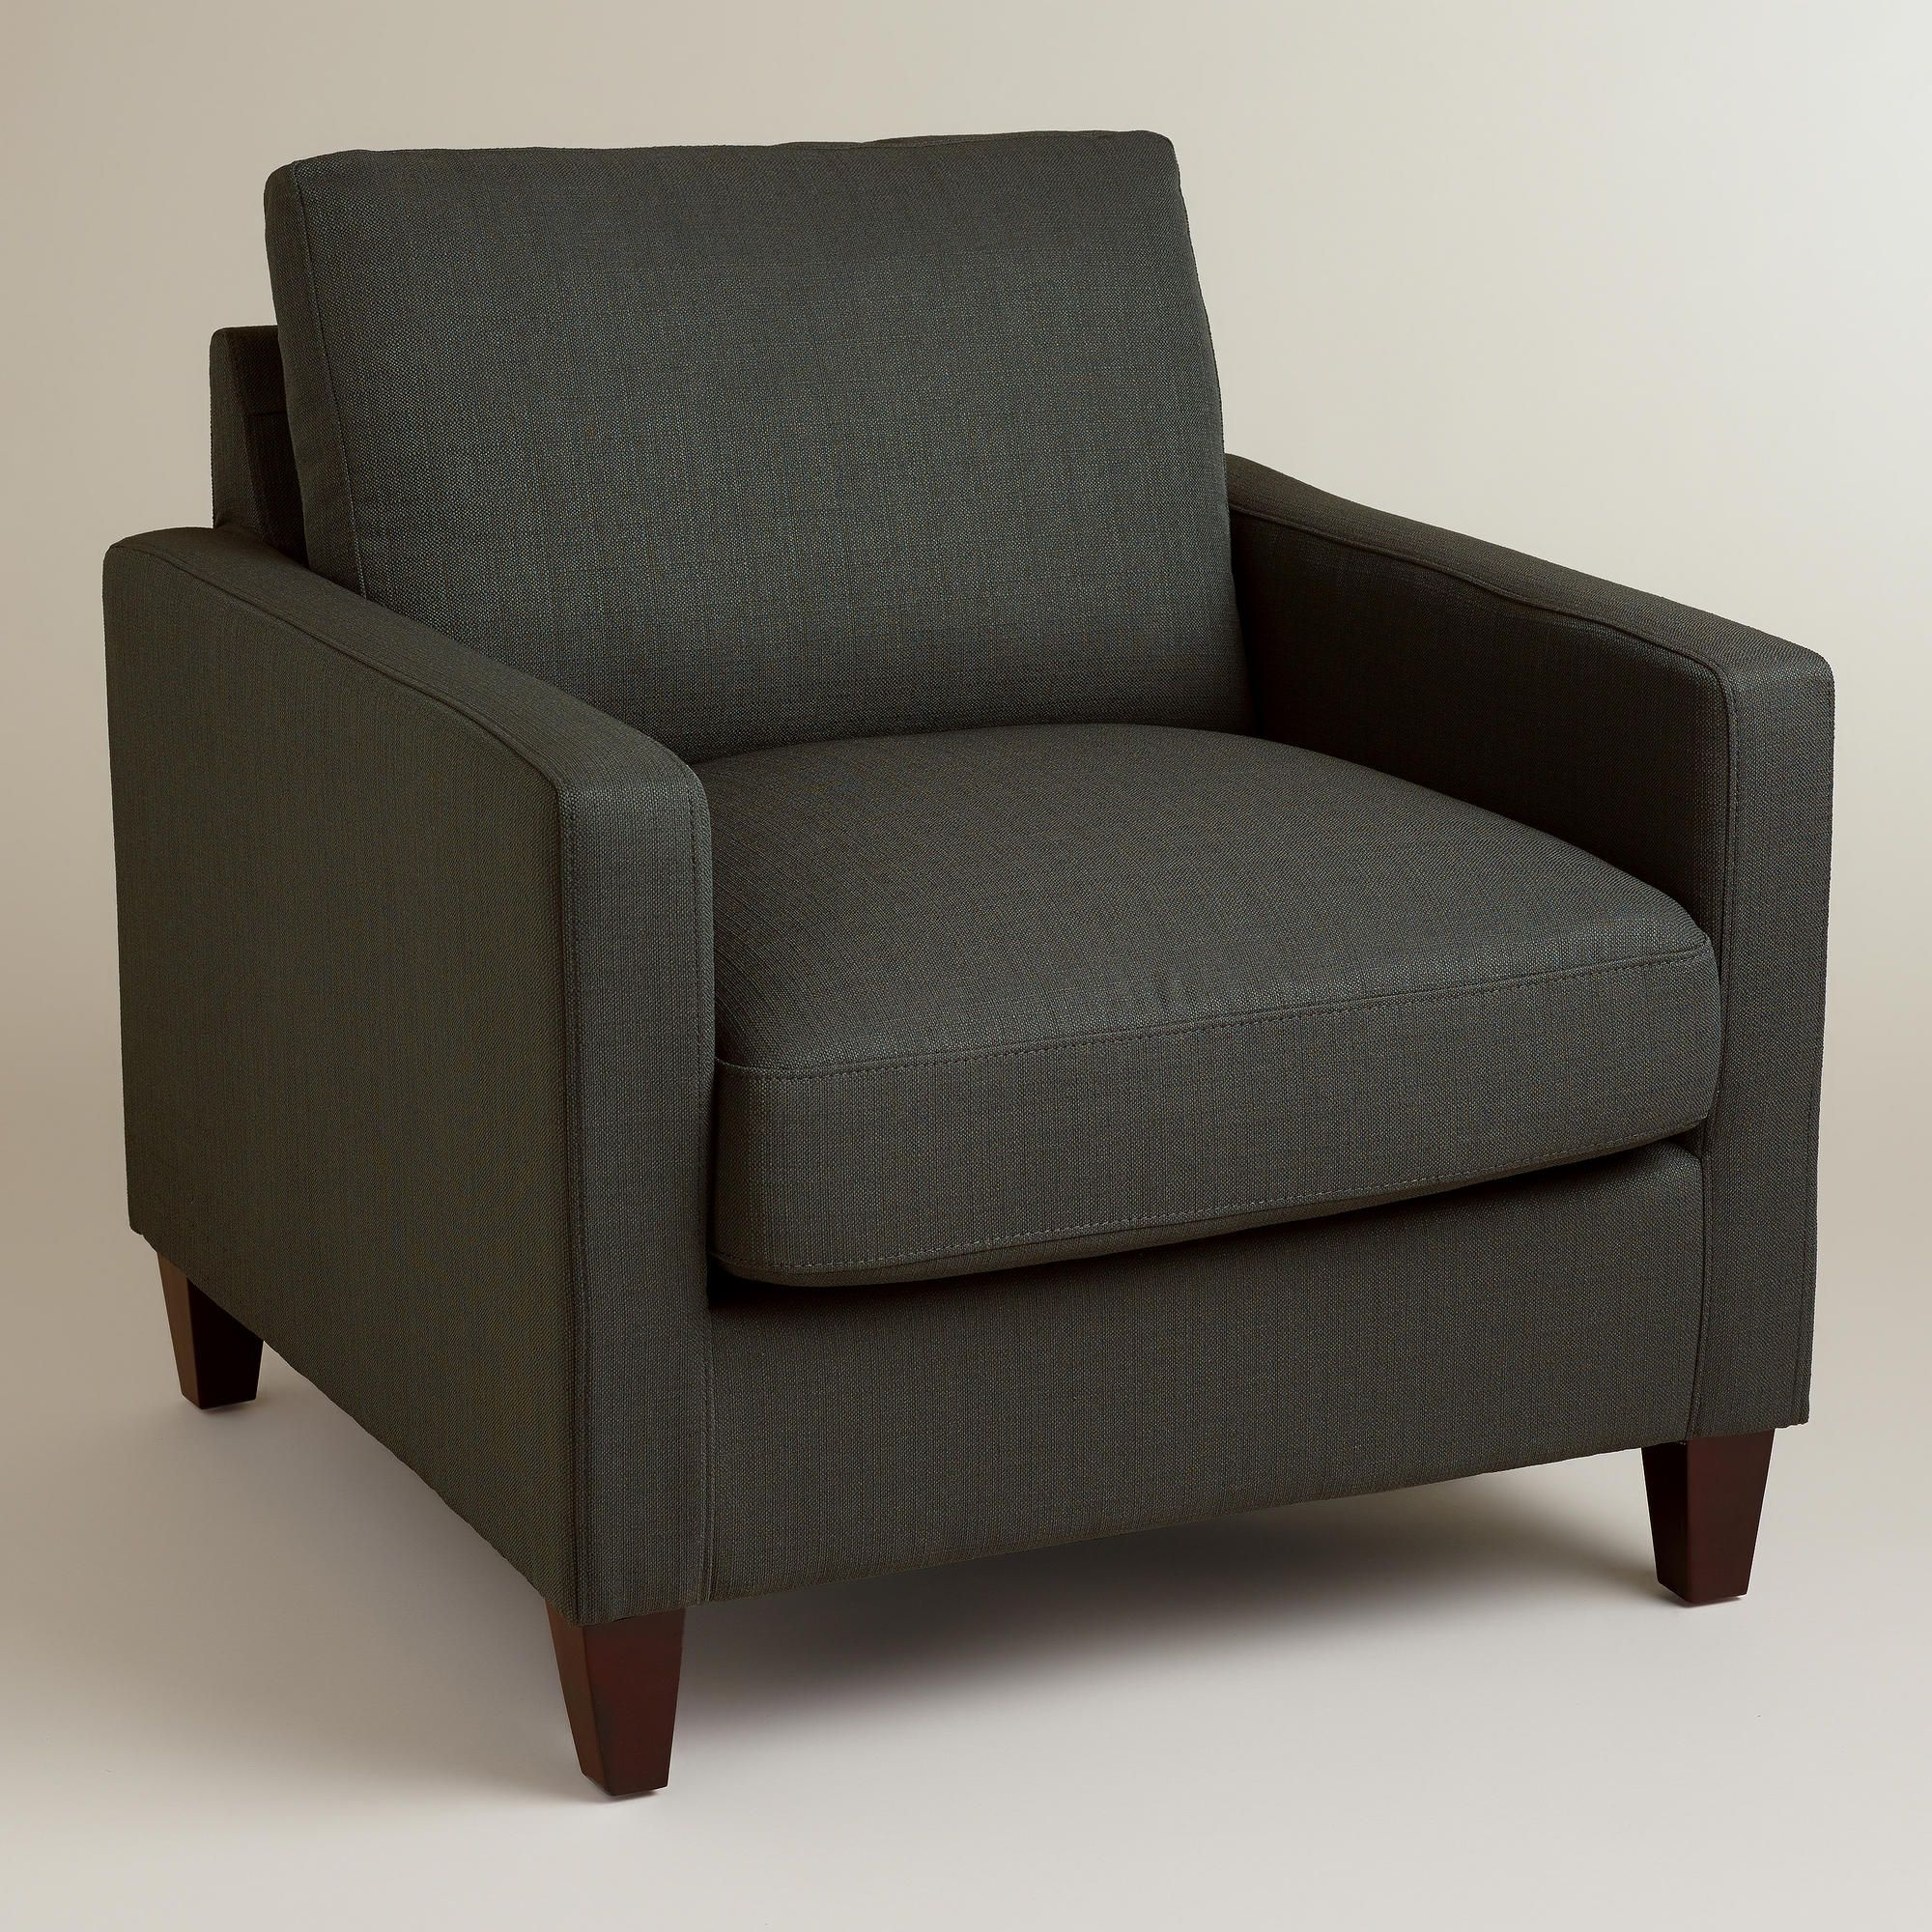 Charcoal Abbott Chair World Market With Images Living Room